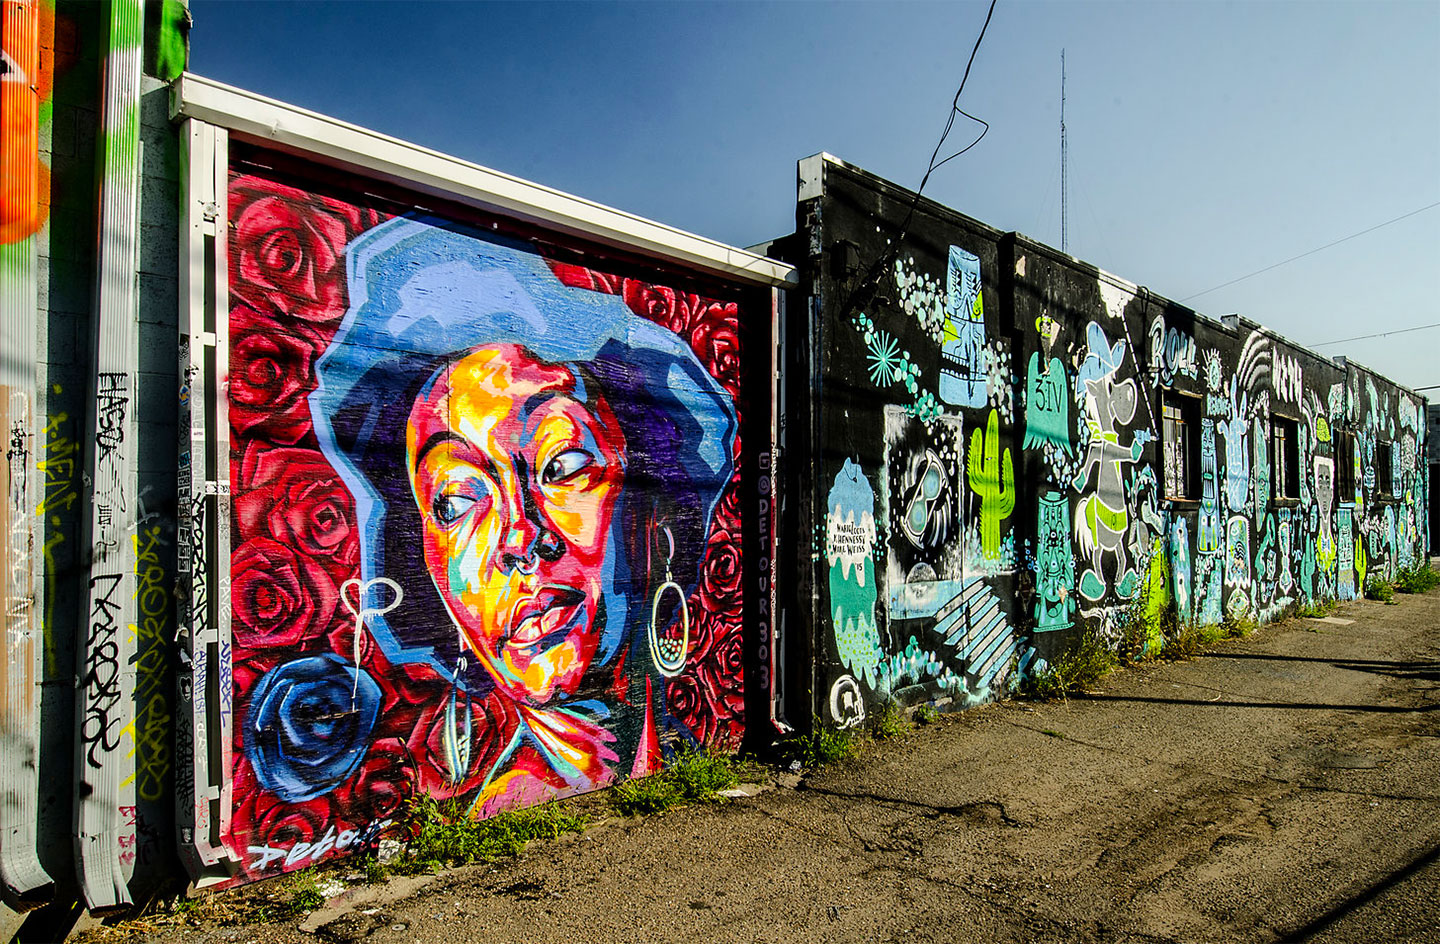 Things to Do in Denver - RINO Street Art